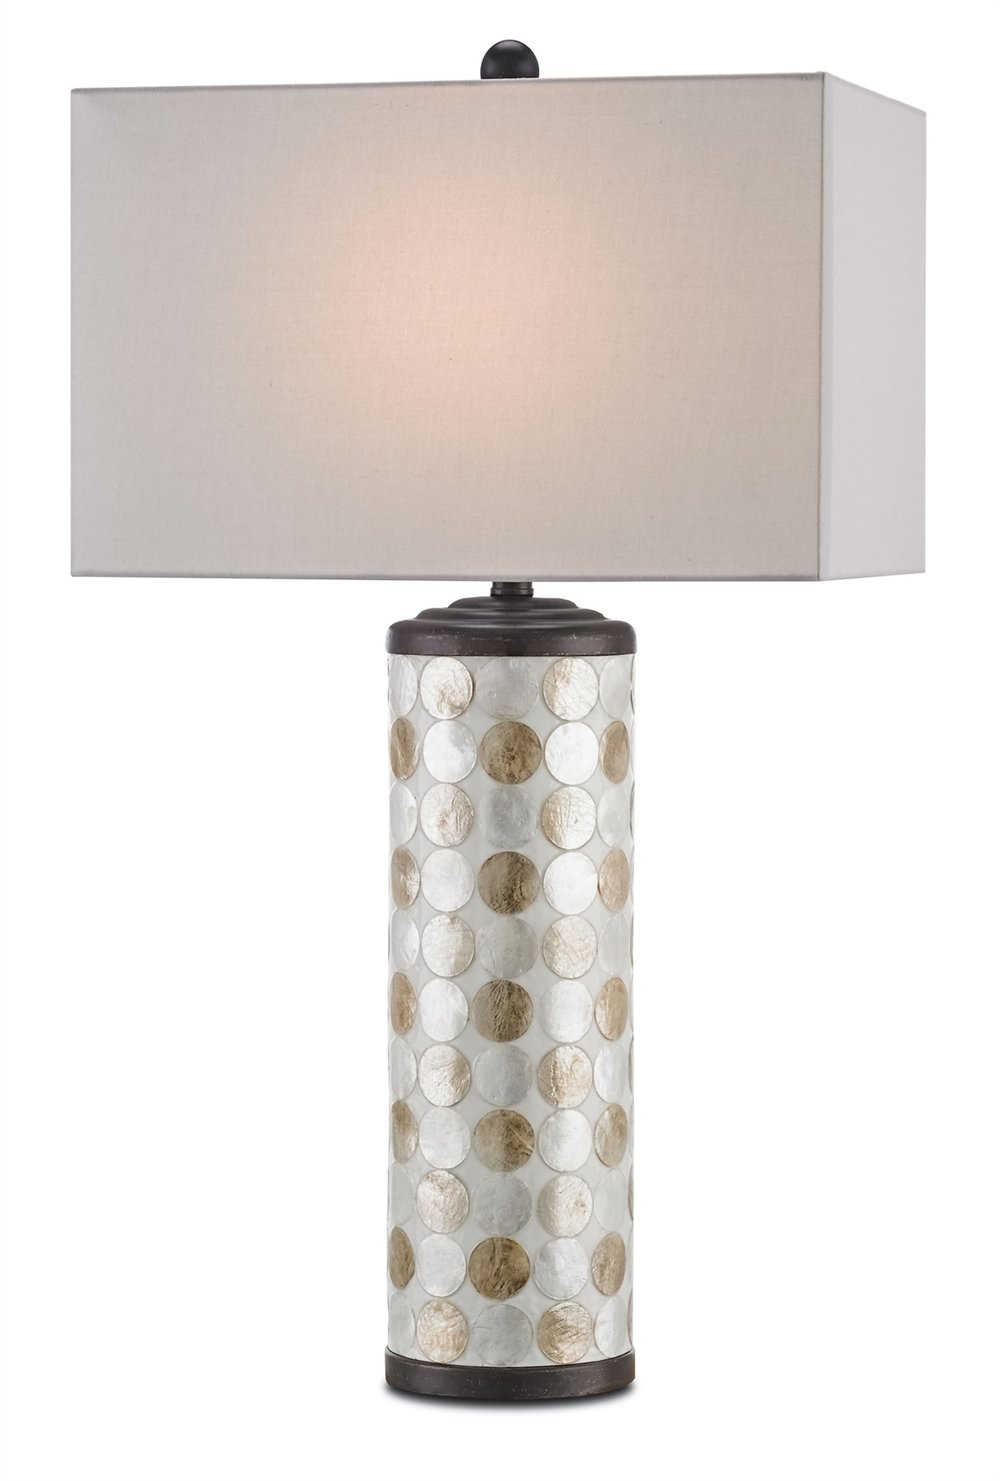 SeaFairLamp.jpg